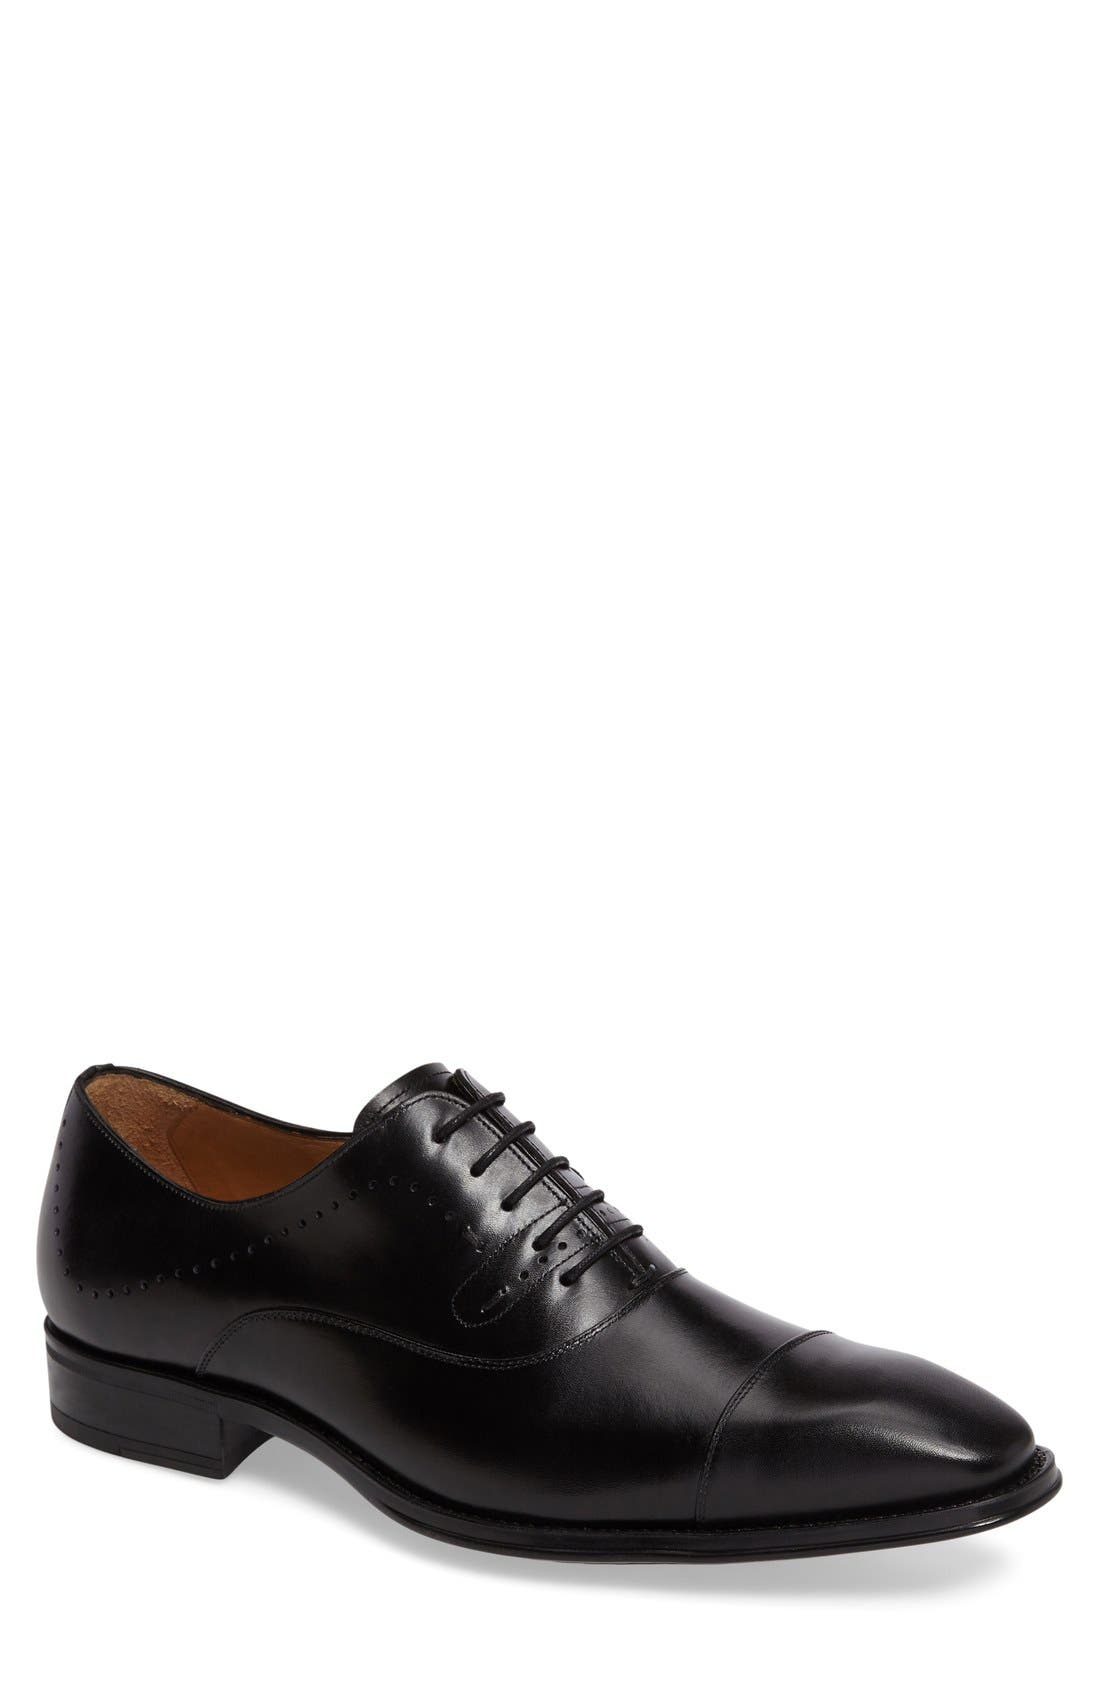 'Fermo' Cap Toe Perforated Oxford,                         Main,                         color, Black